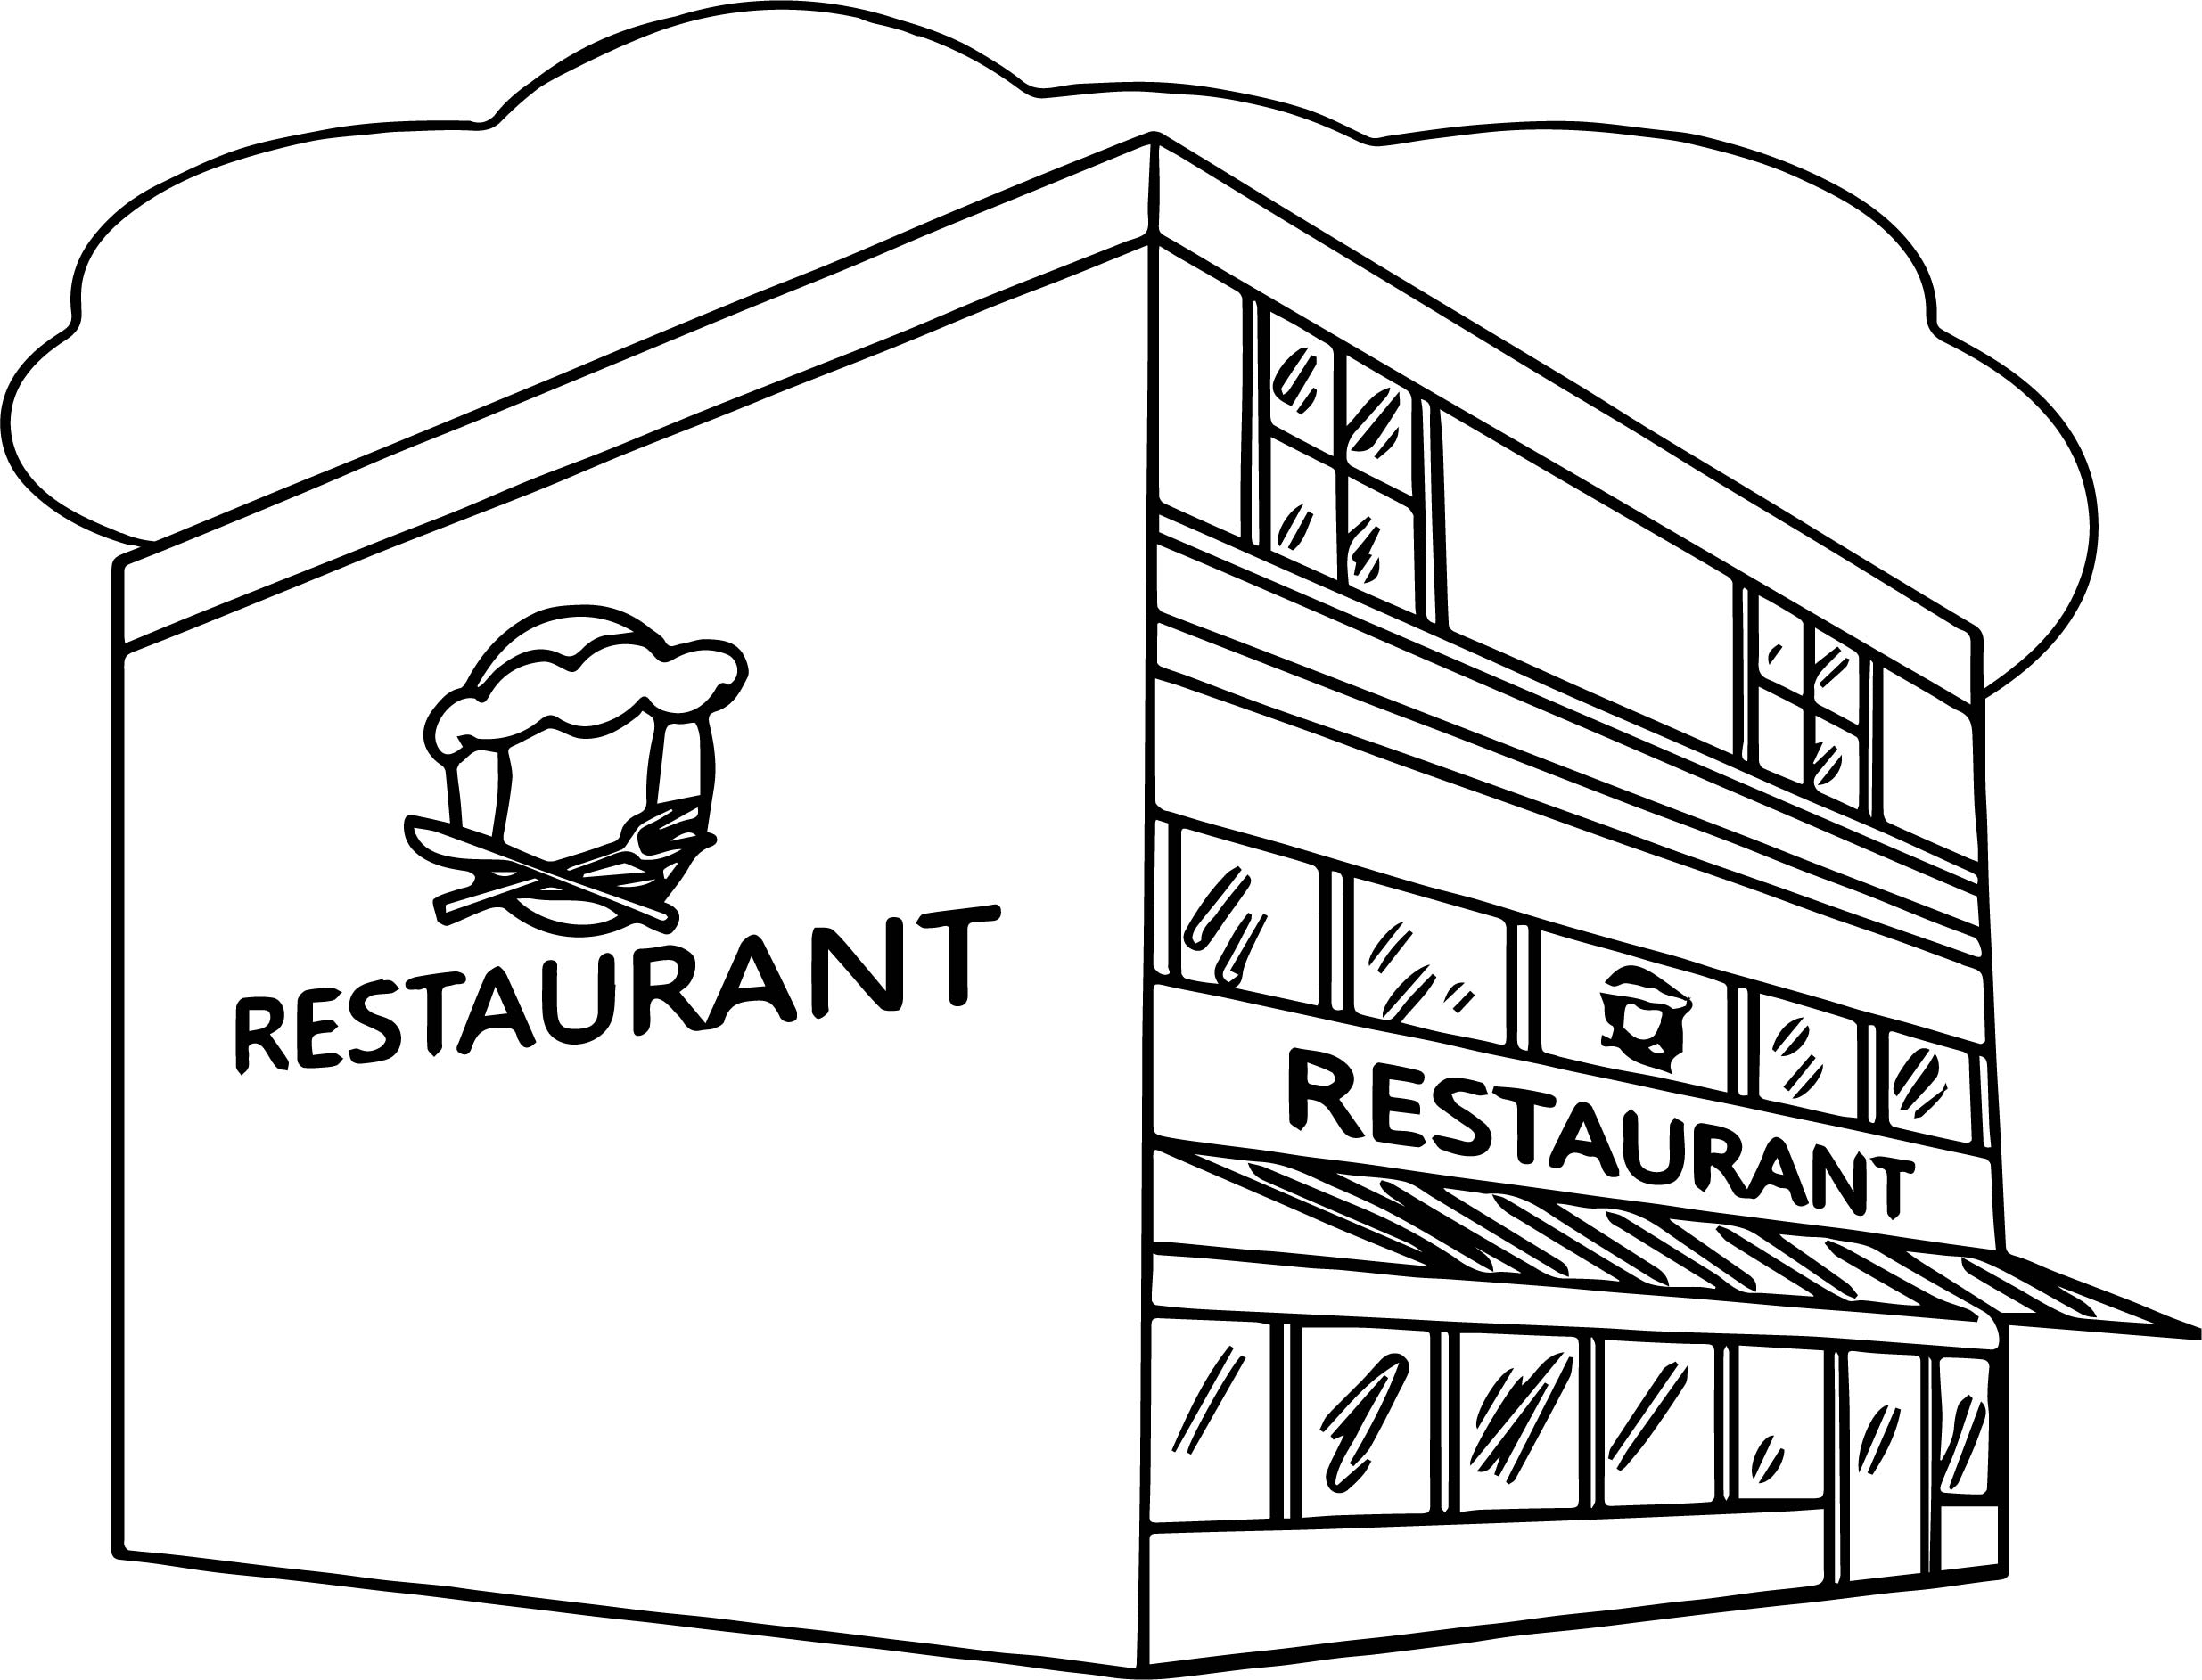 Coloring Pages for Restaurants to Print 17j - To print for your project